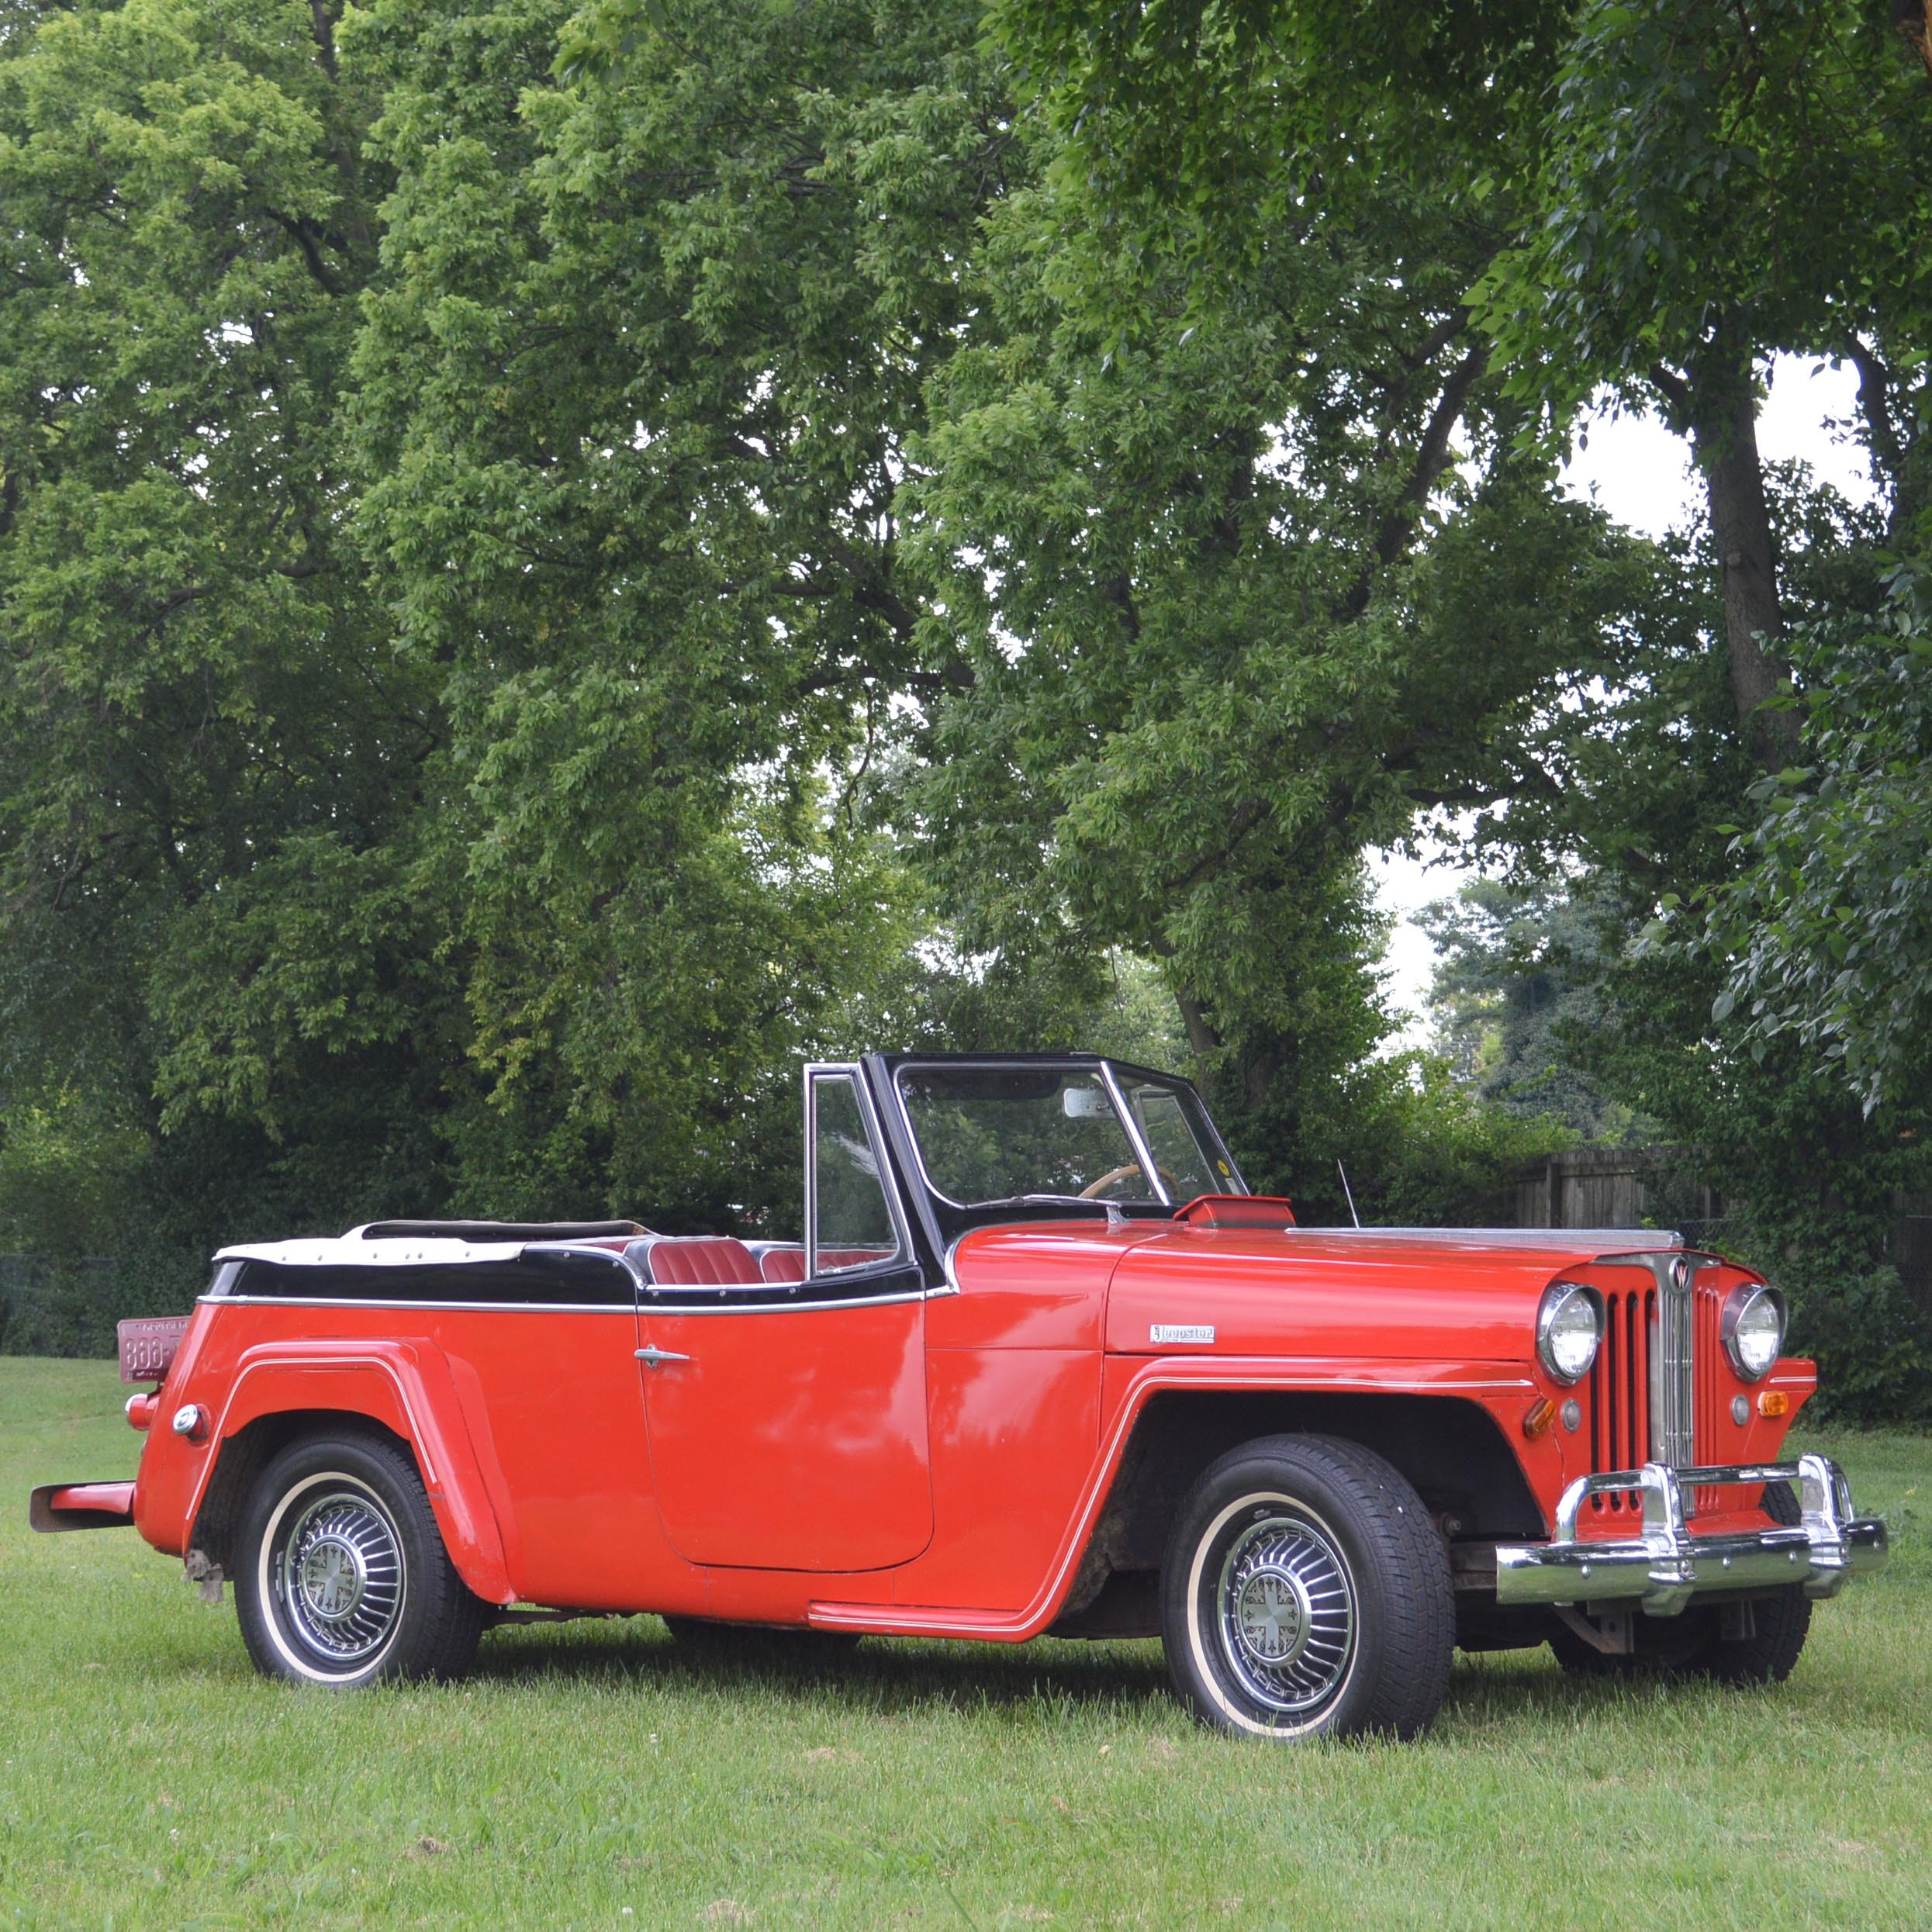 1949 Willy's Overland Soft Top Jeepster